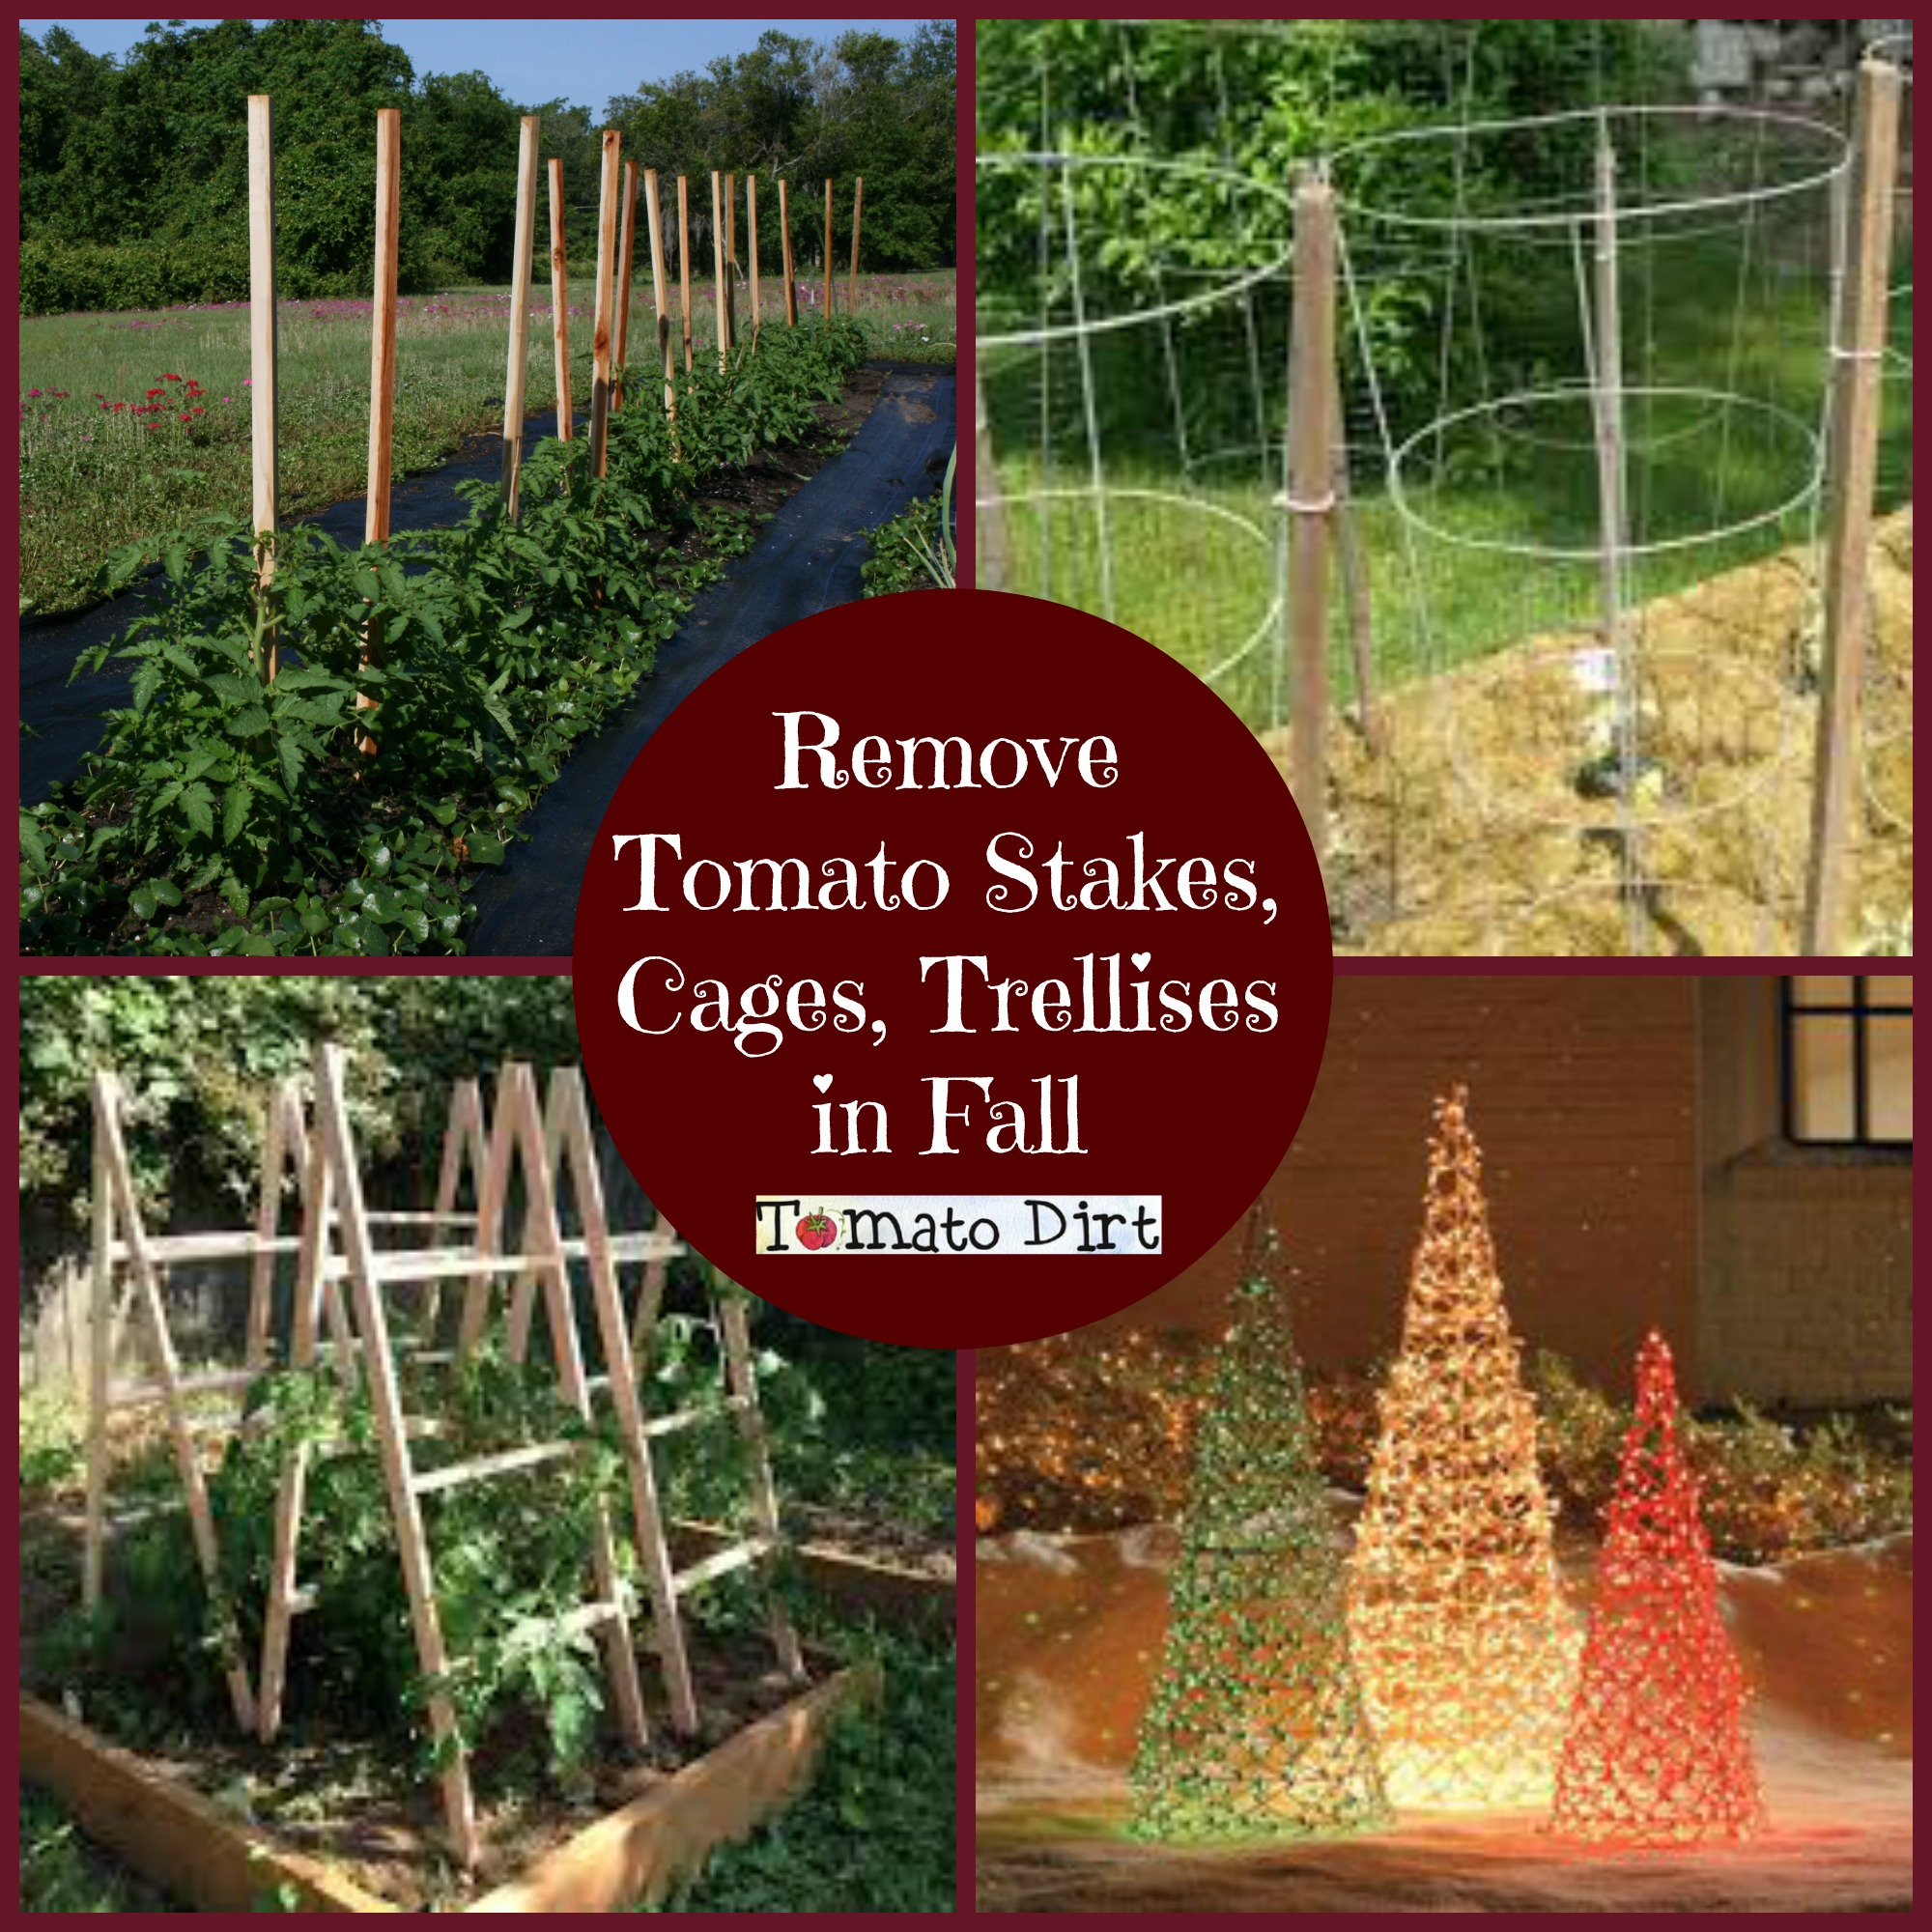 Remove Tomato Stakes, Cages, Trellises in Fall from Tomato Dirt